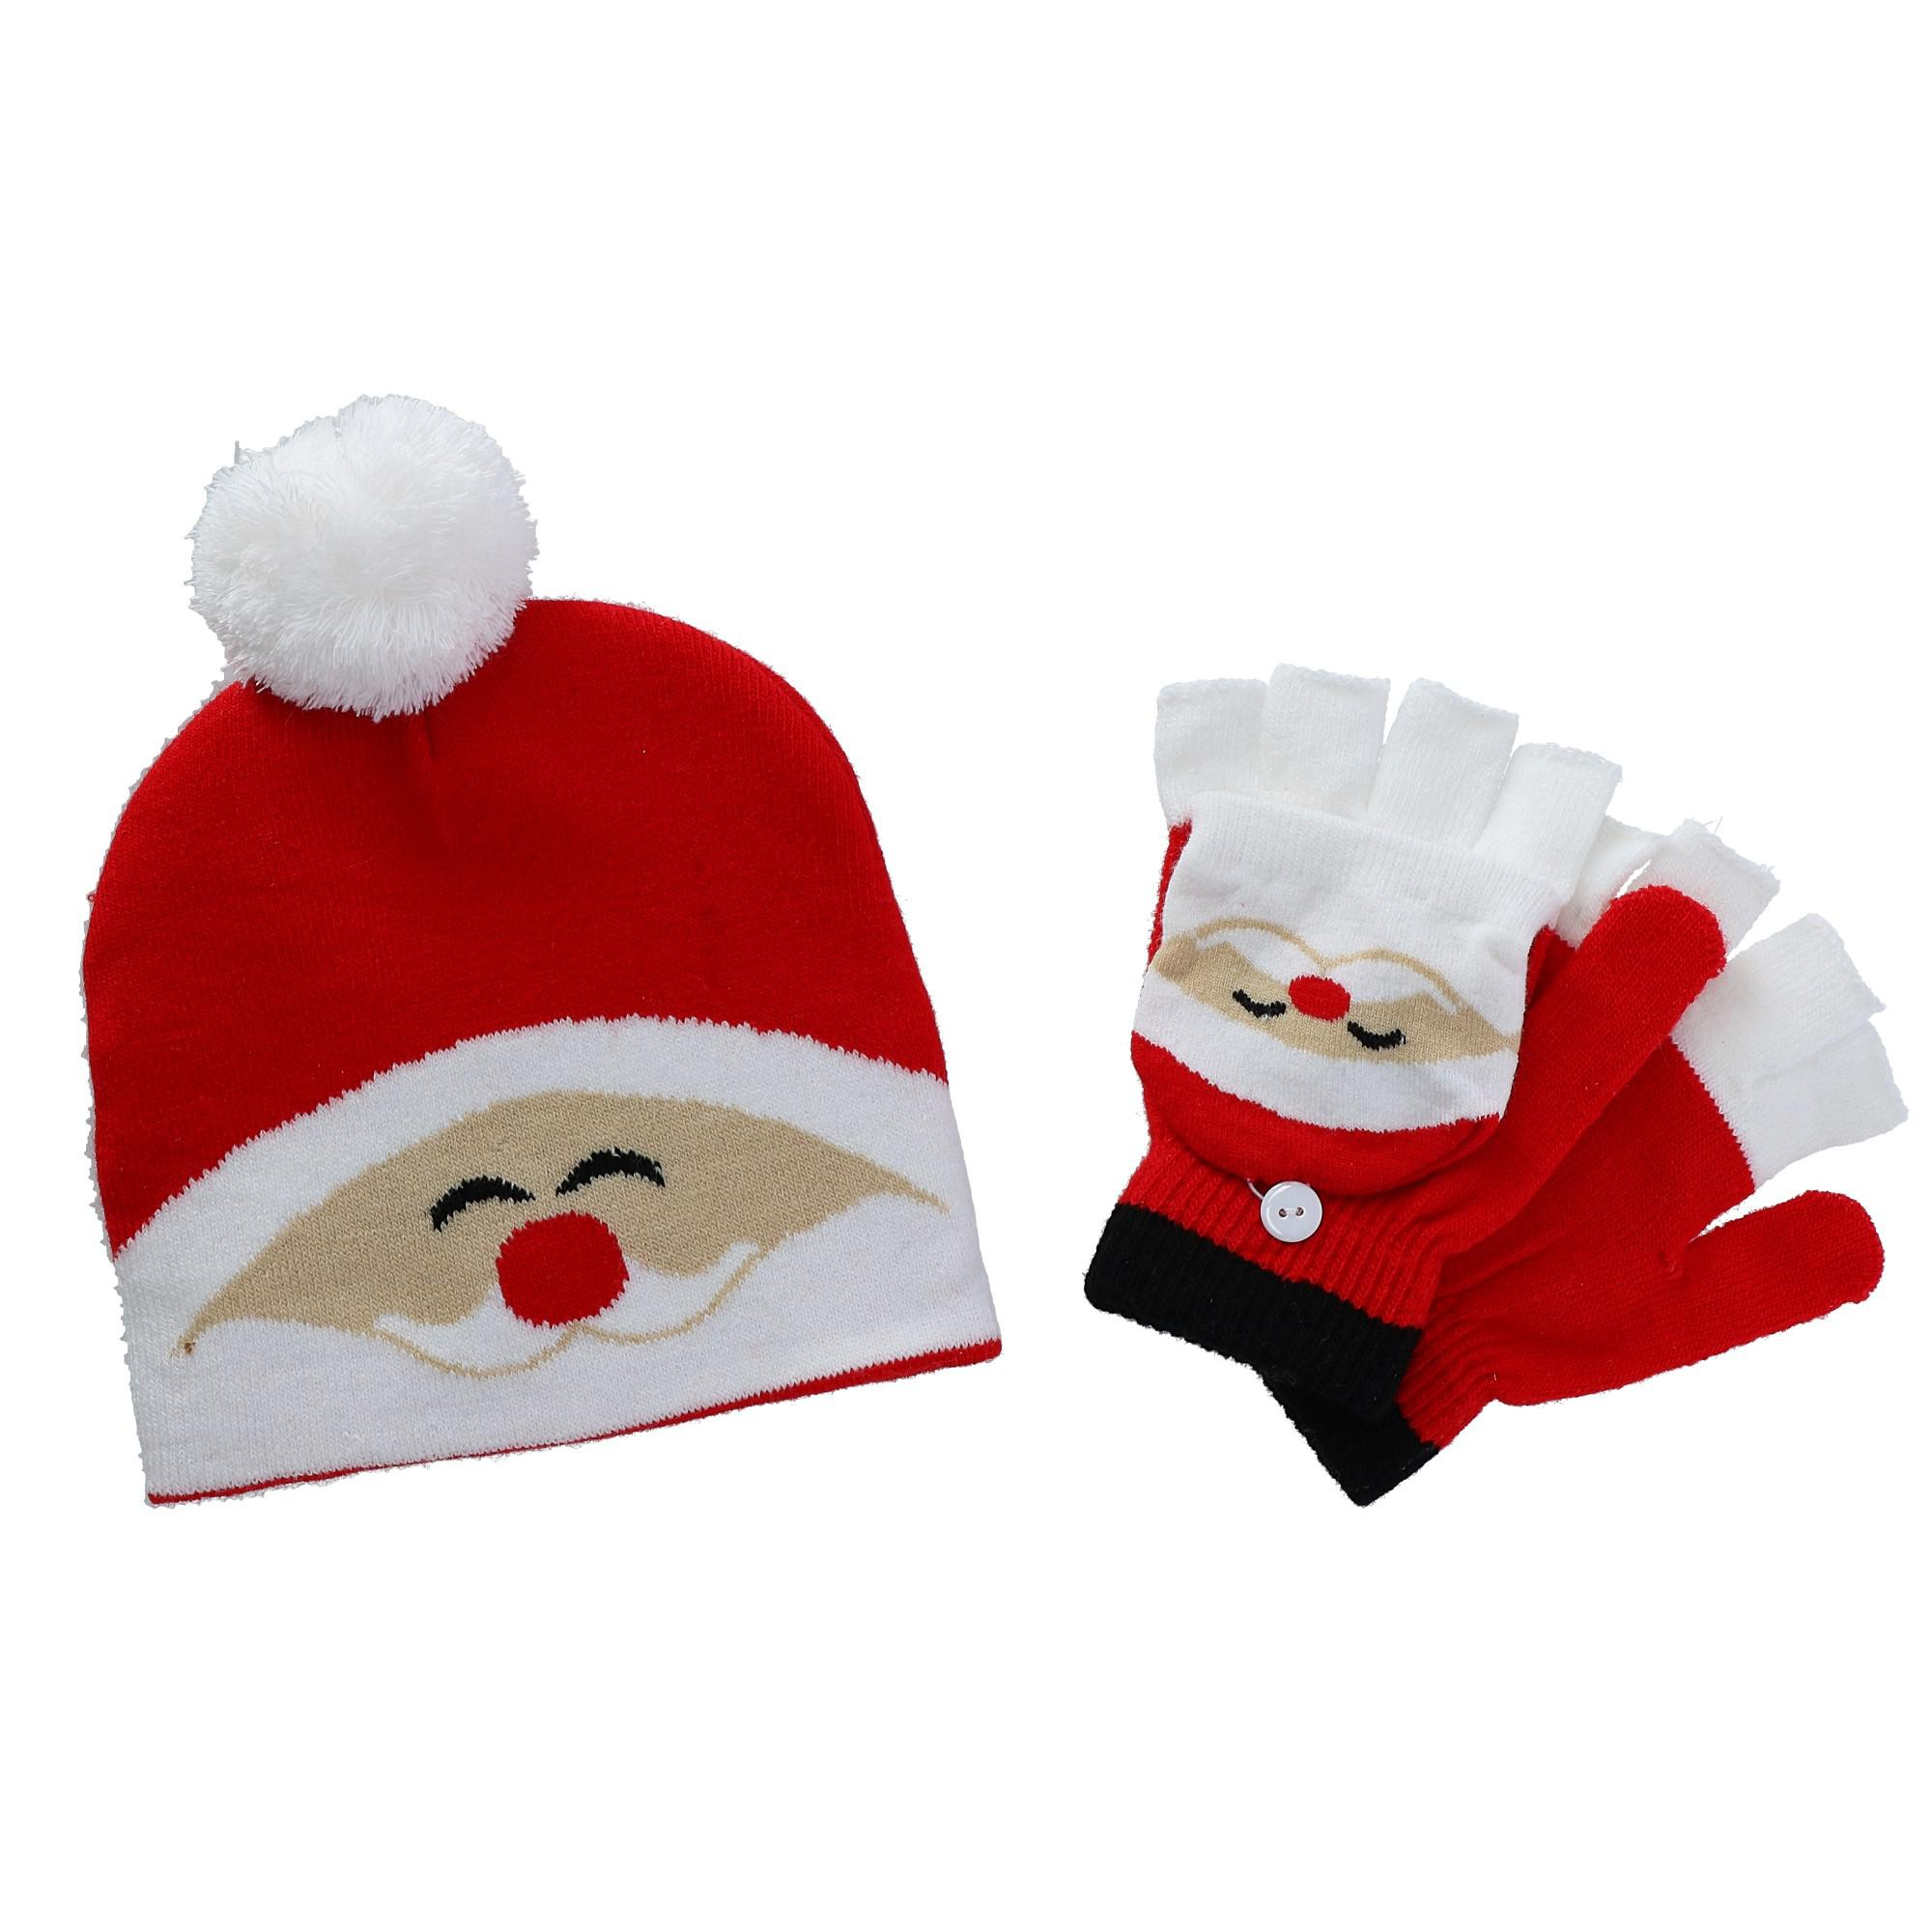 CTM Kids' Winter Themed Hat and Convertible